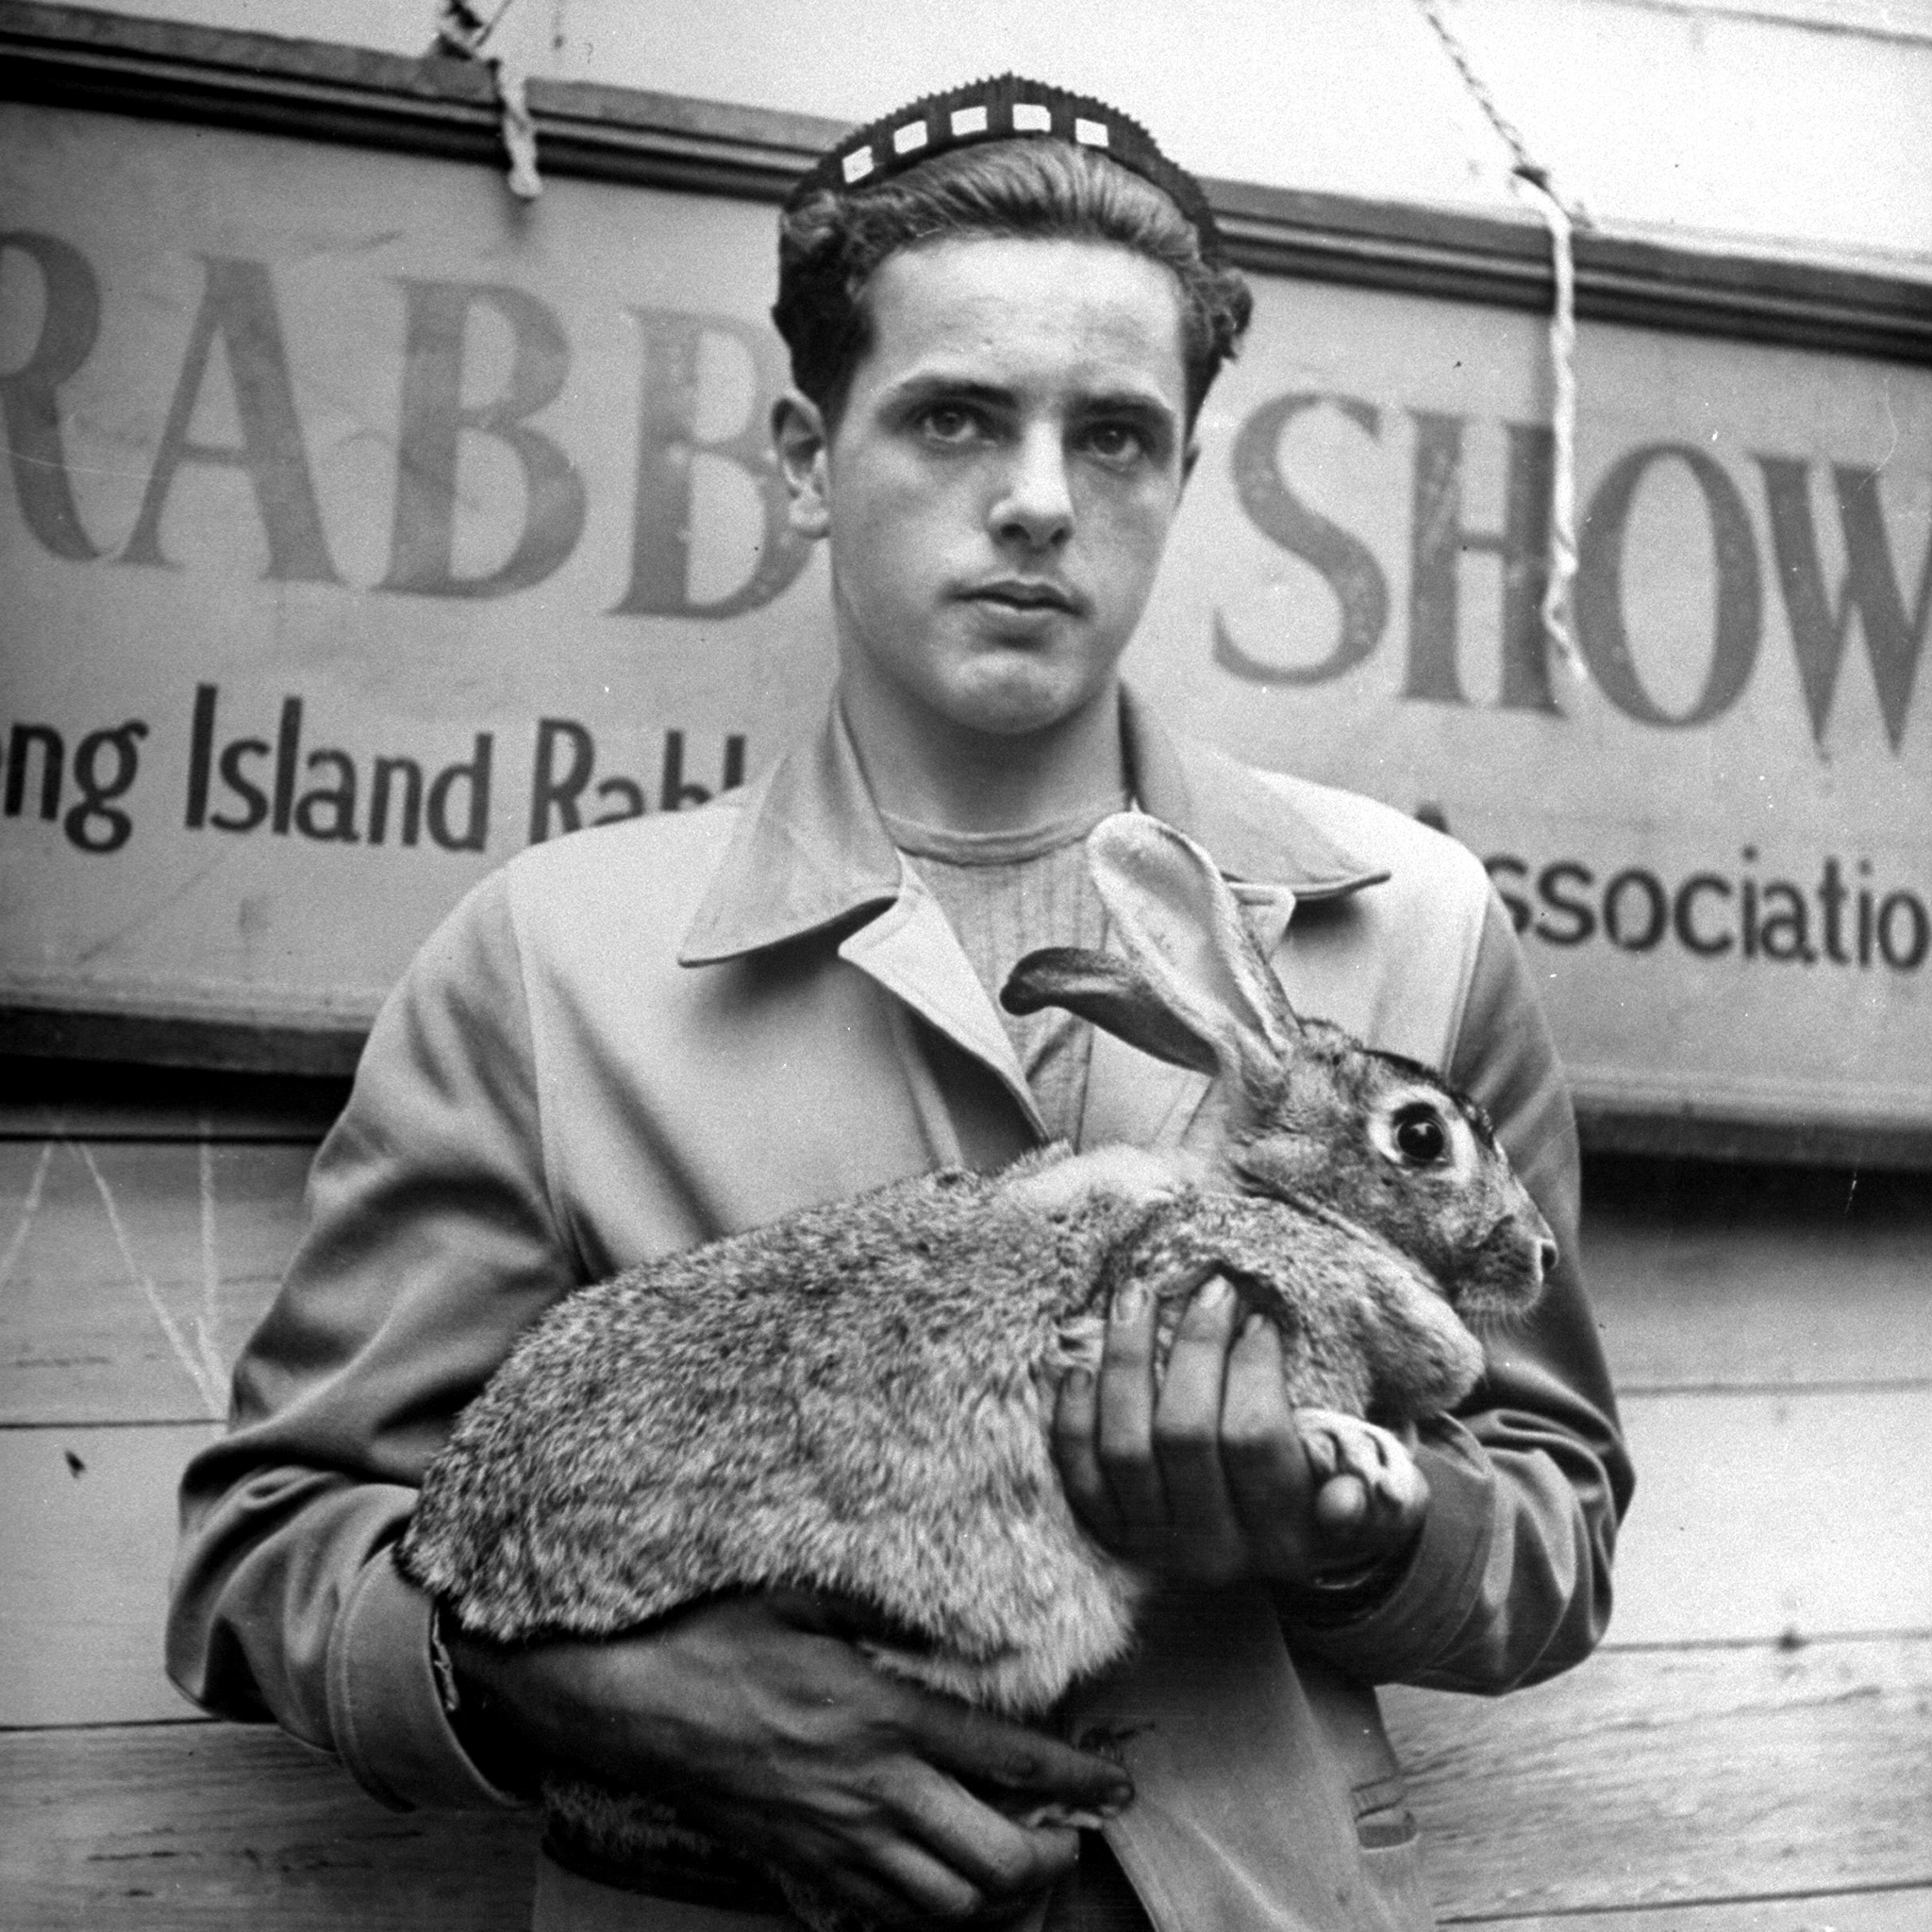 Long Island Rabbit Breeders Association Rabbit show, circa 1943.